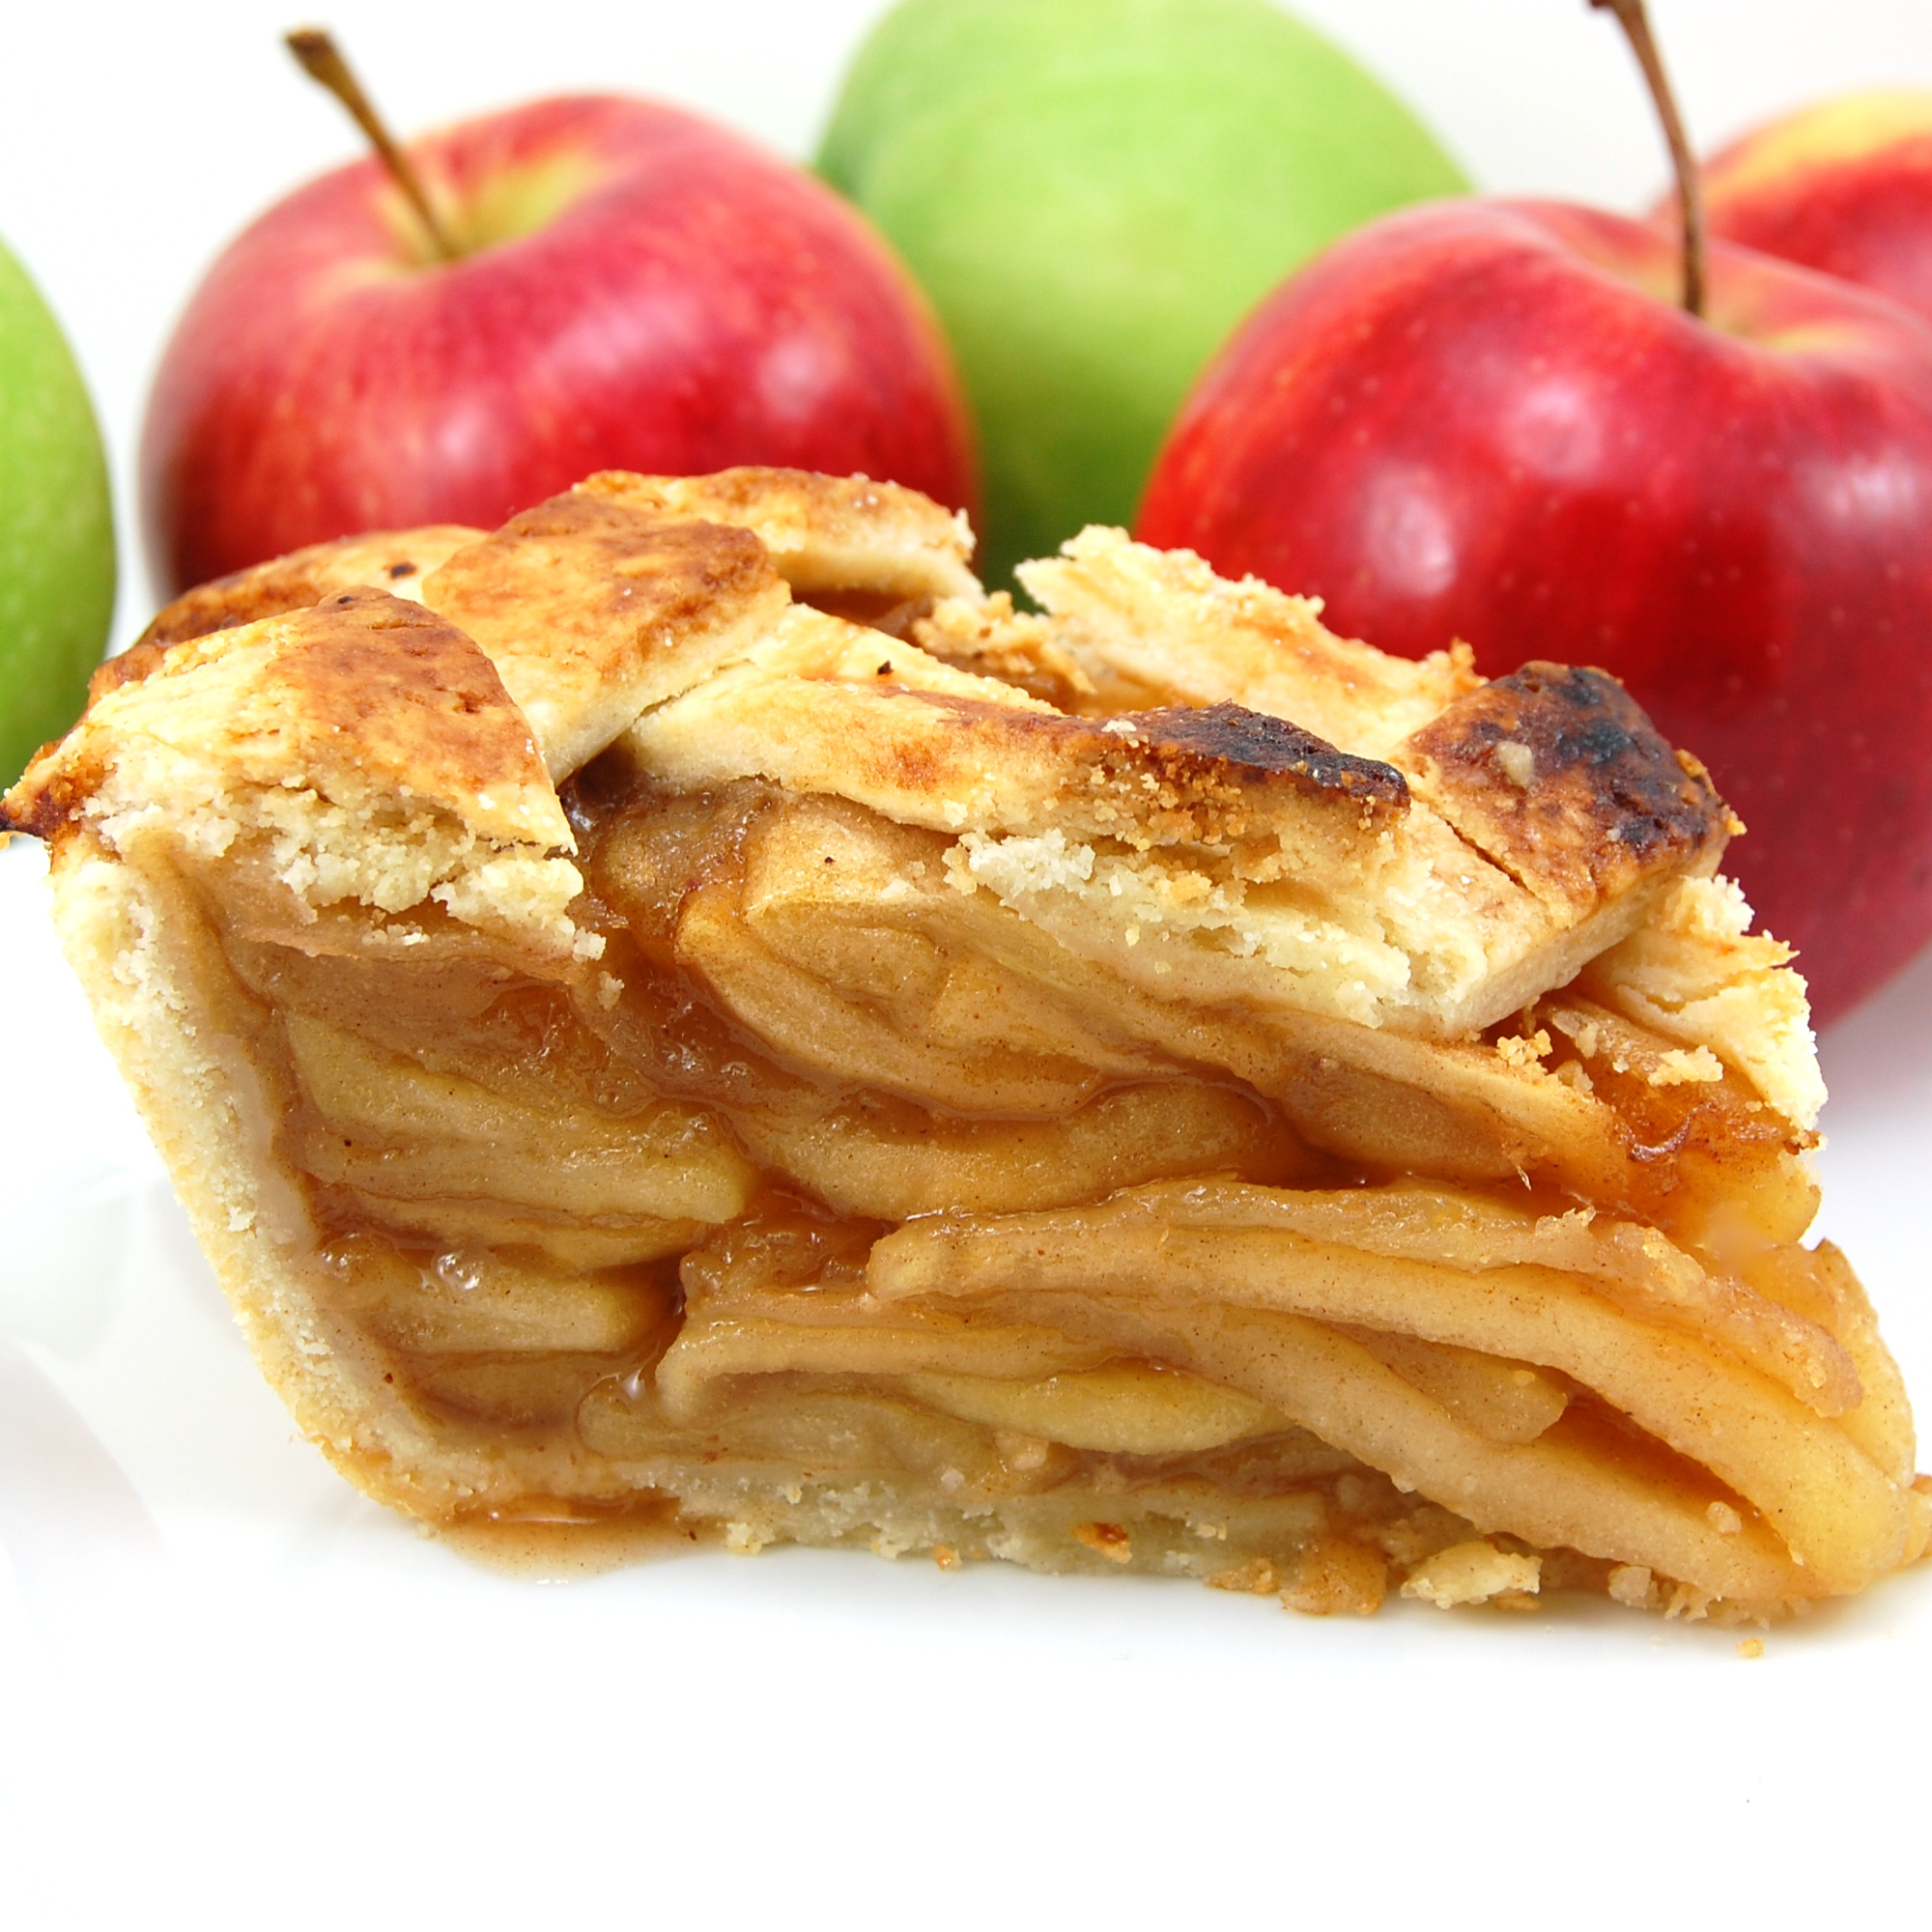 American Apple Pie Slice Apple piethe classic american